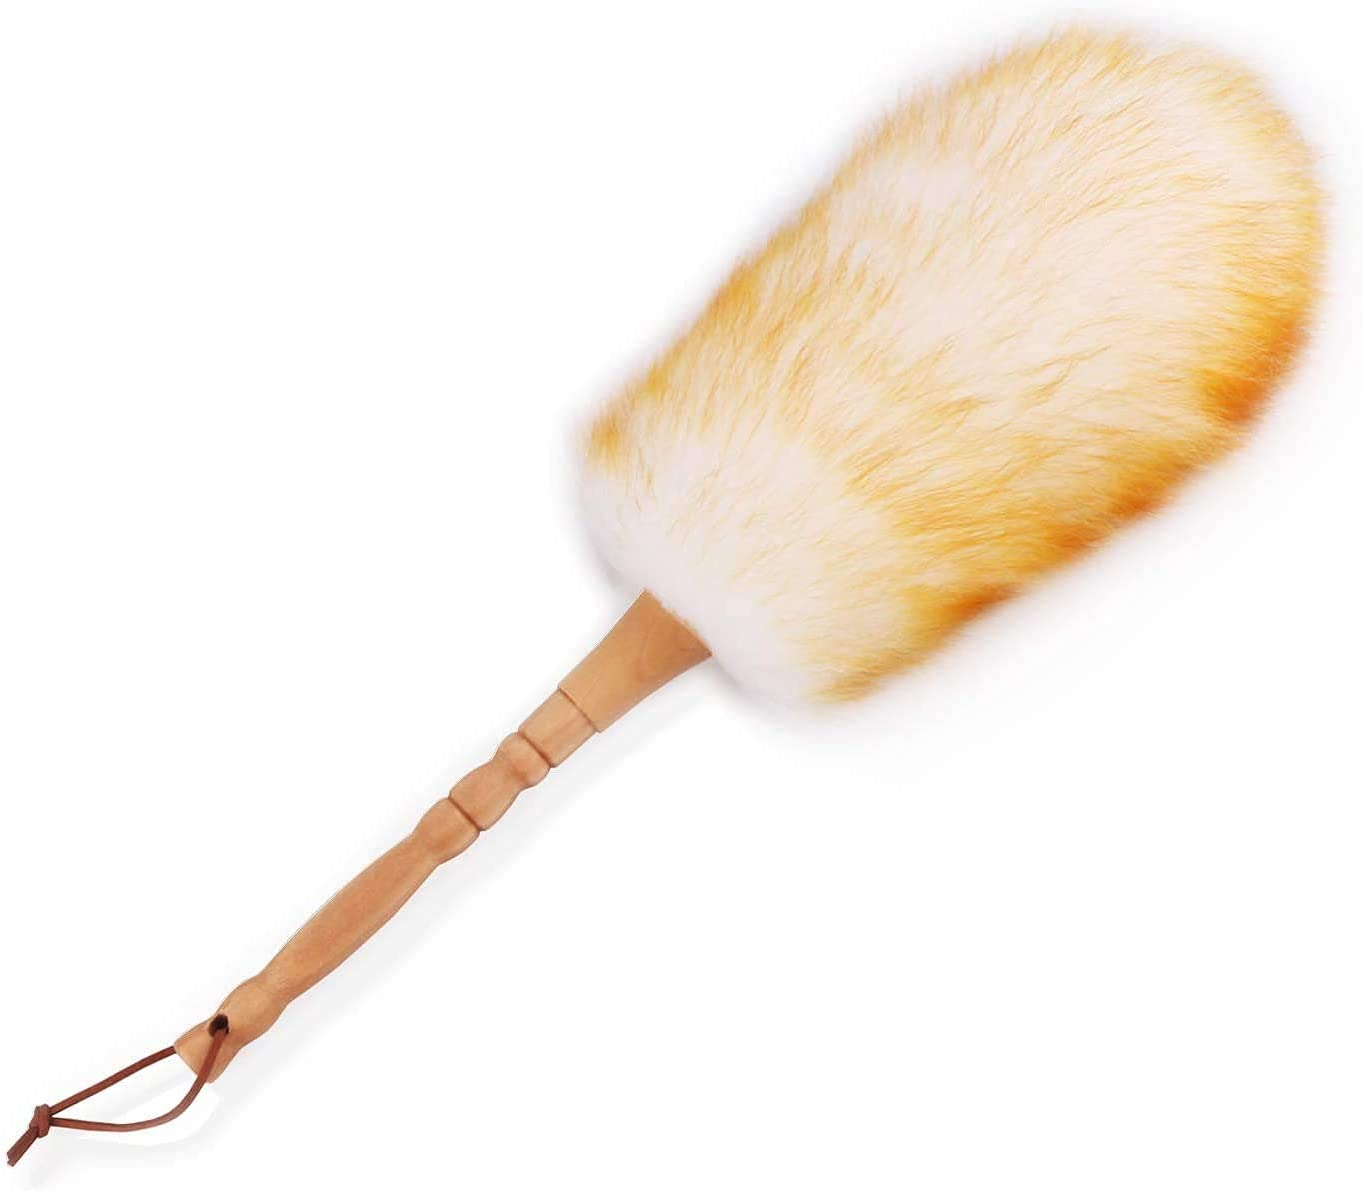 A soft wool duster with a wooden handle.